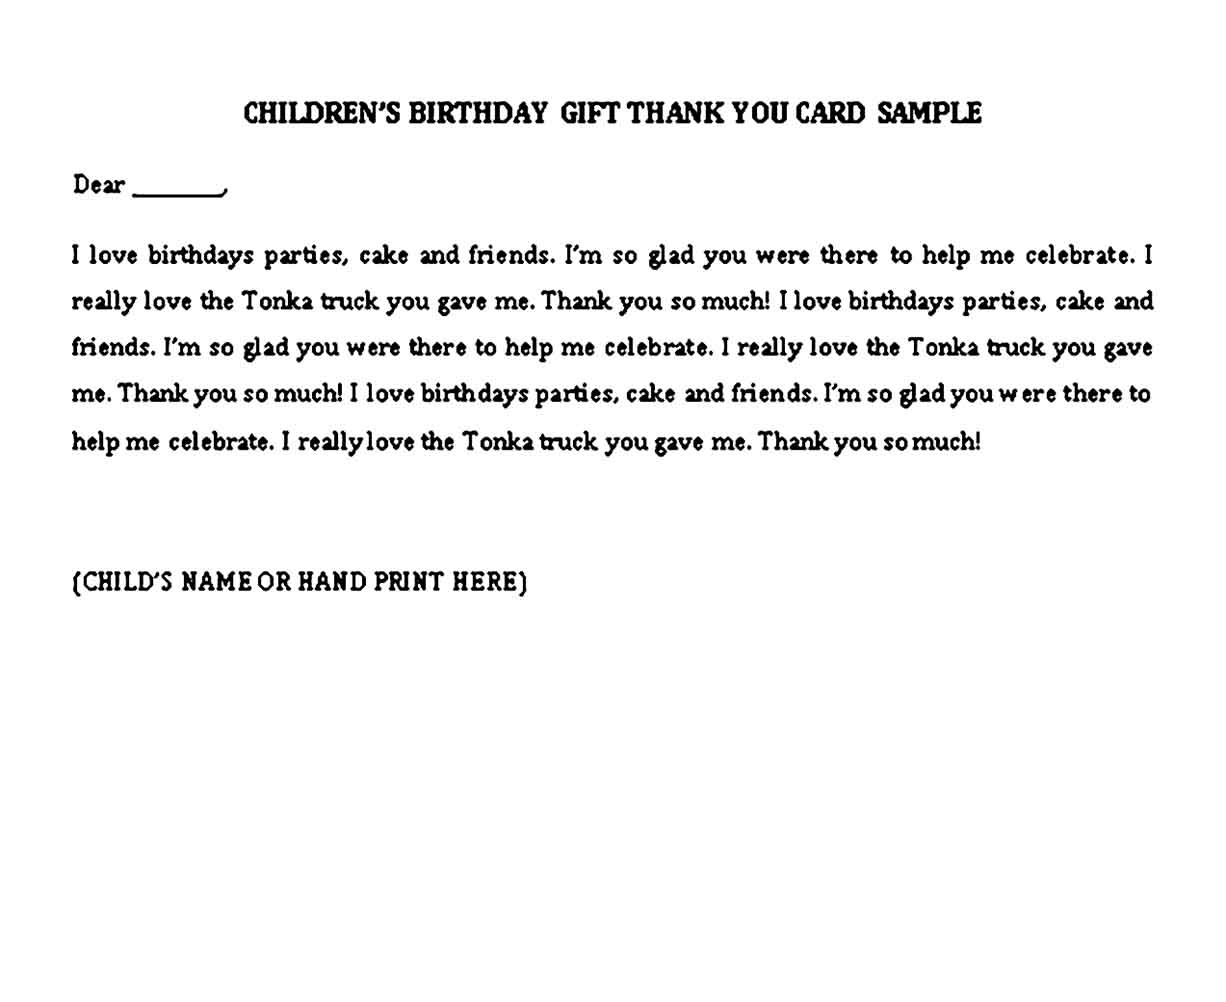 thank you note for birthday gift